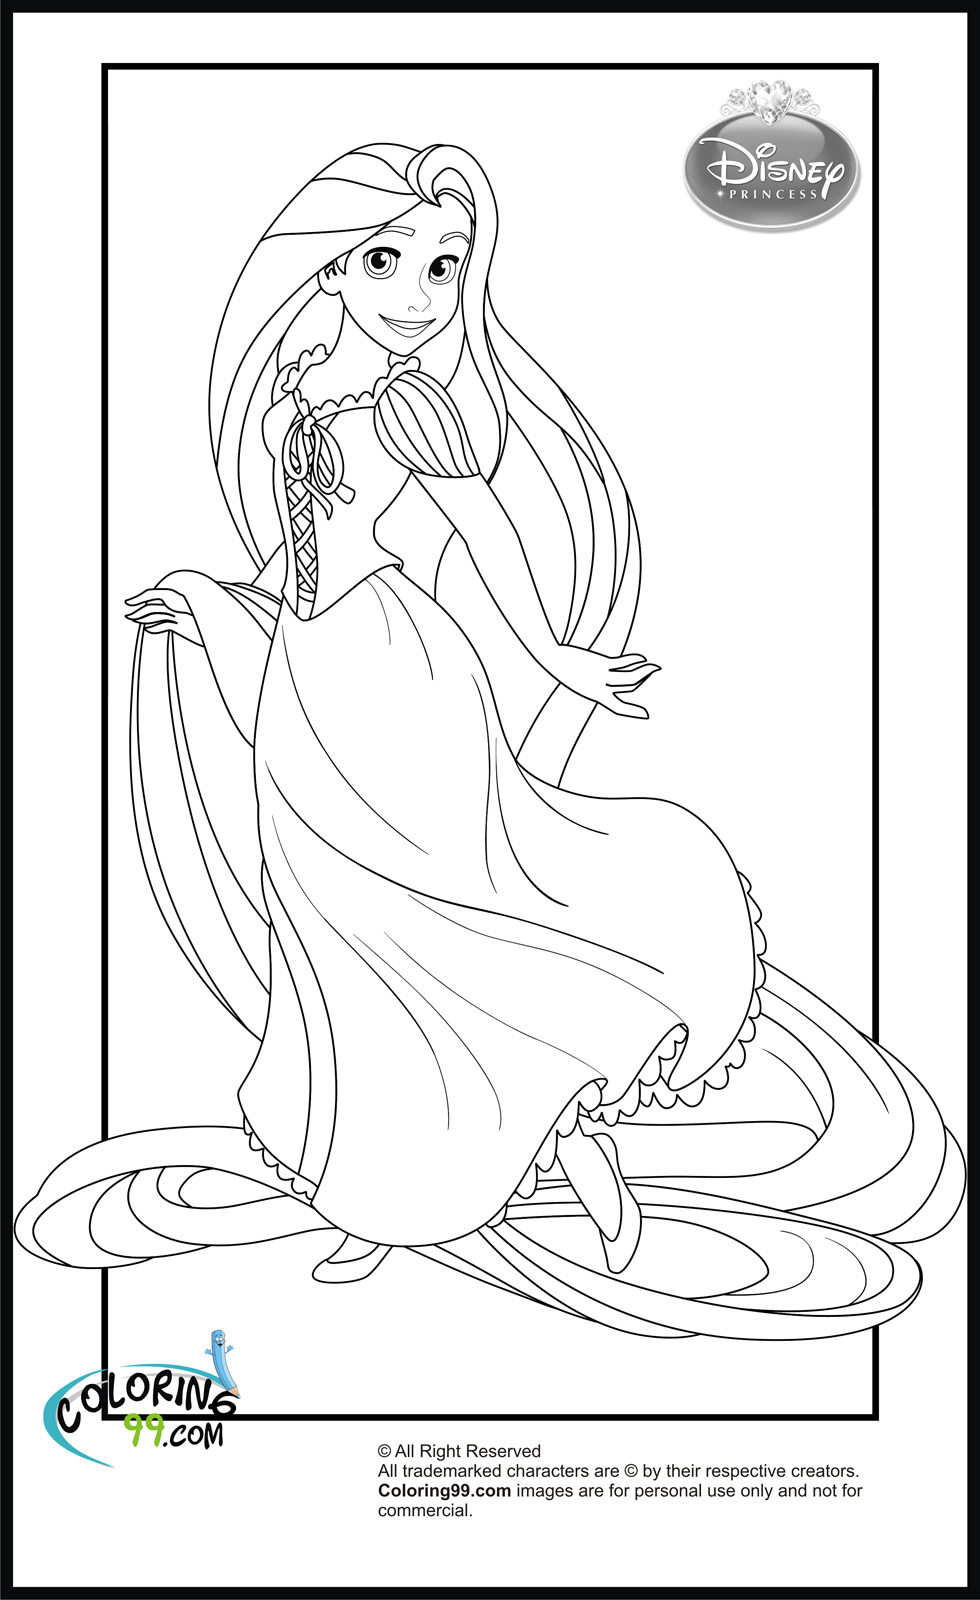 disney princess coloring worksheets disney princess coloring pages minister coloring disney coloring princess worksheets